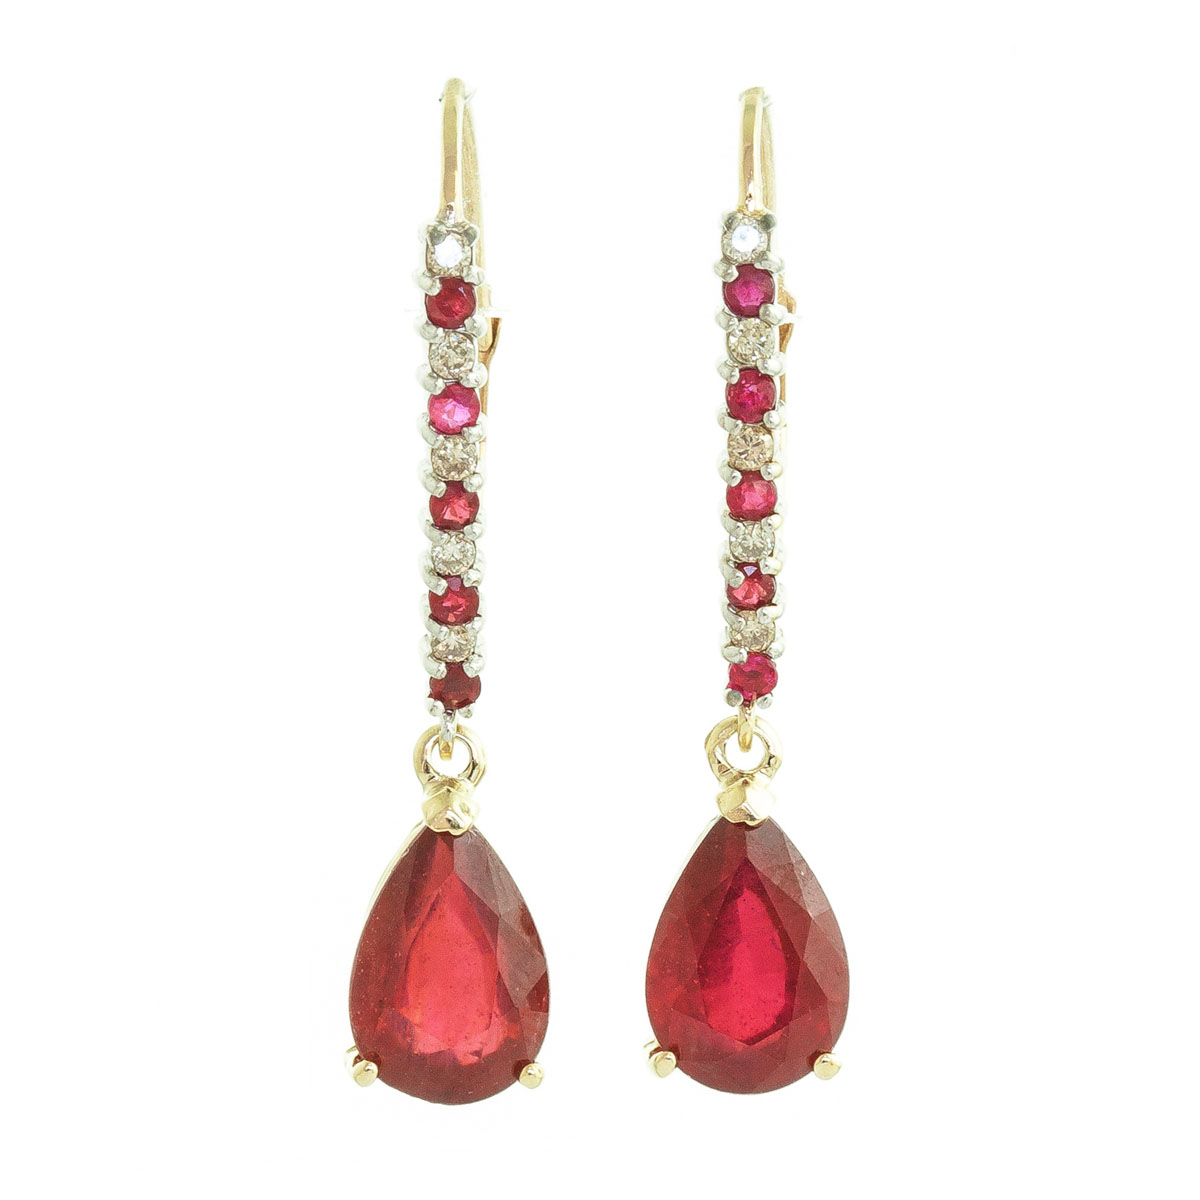 Ruby & Diamond Laced Stem Drop Earrings in 9ct Gold